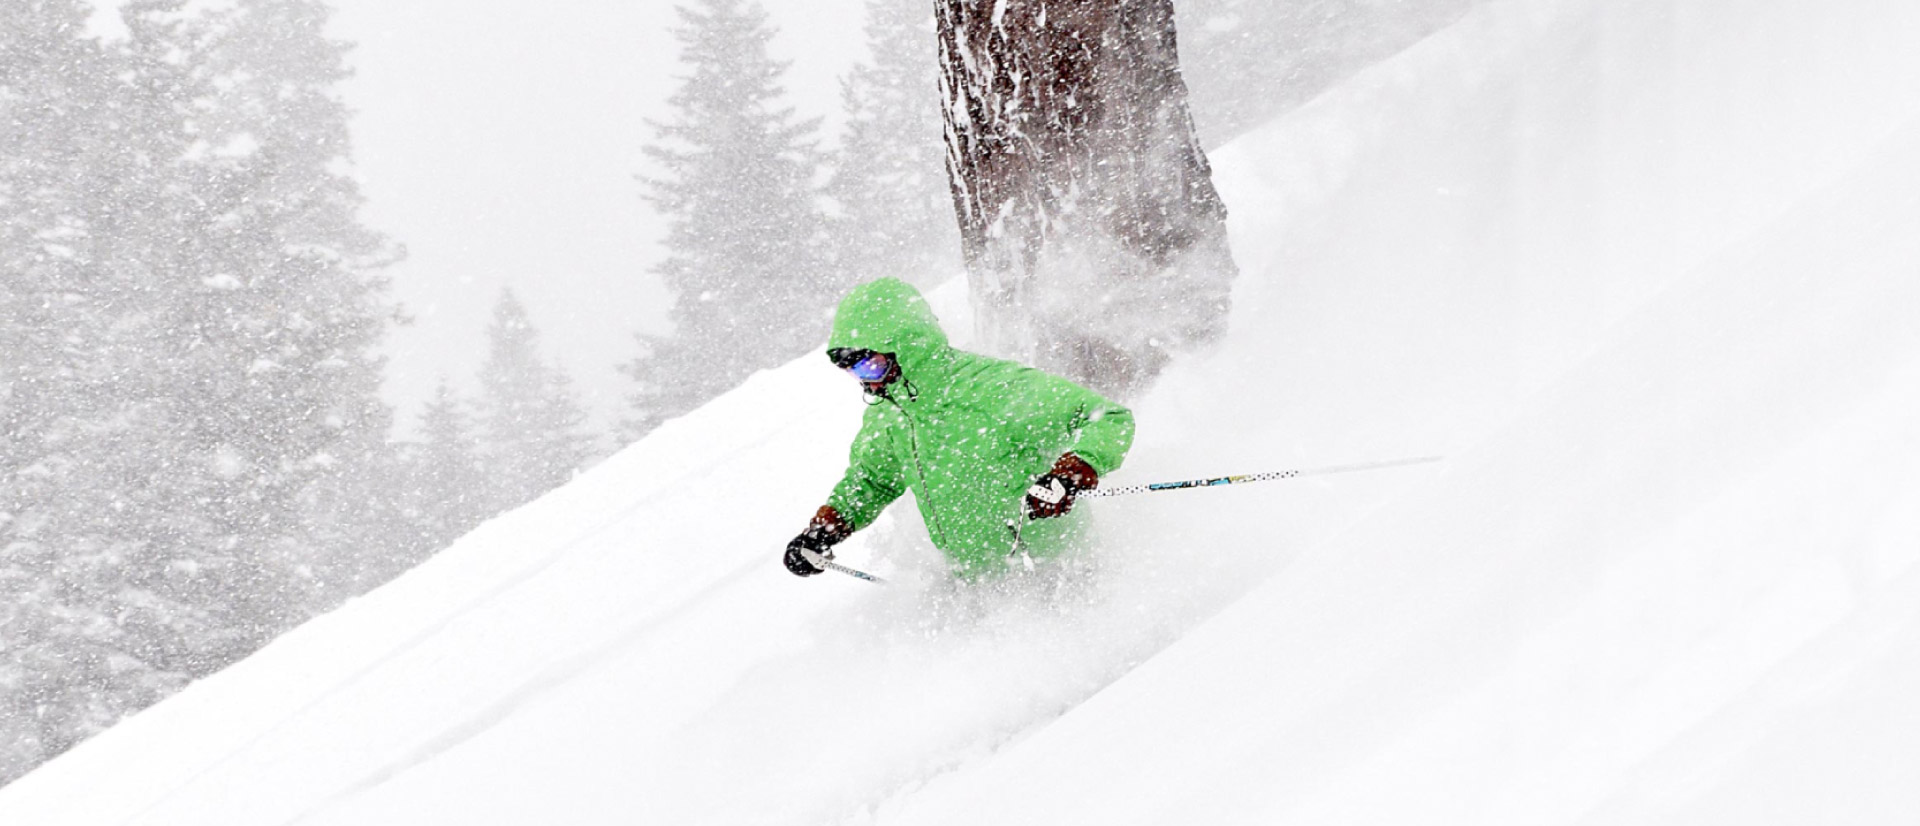 Top of the line ski and snowboard brands, nordica, rossignol, volkl, 686, burton, spyder, helly hansen, volcom, smith, giro,